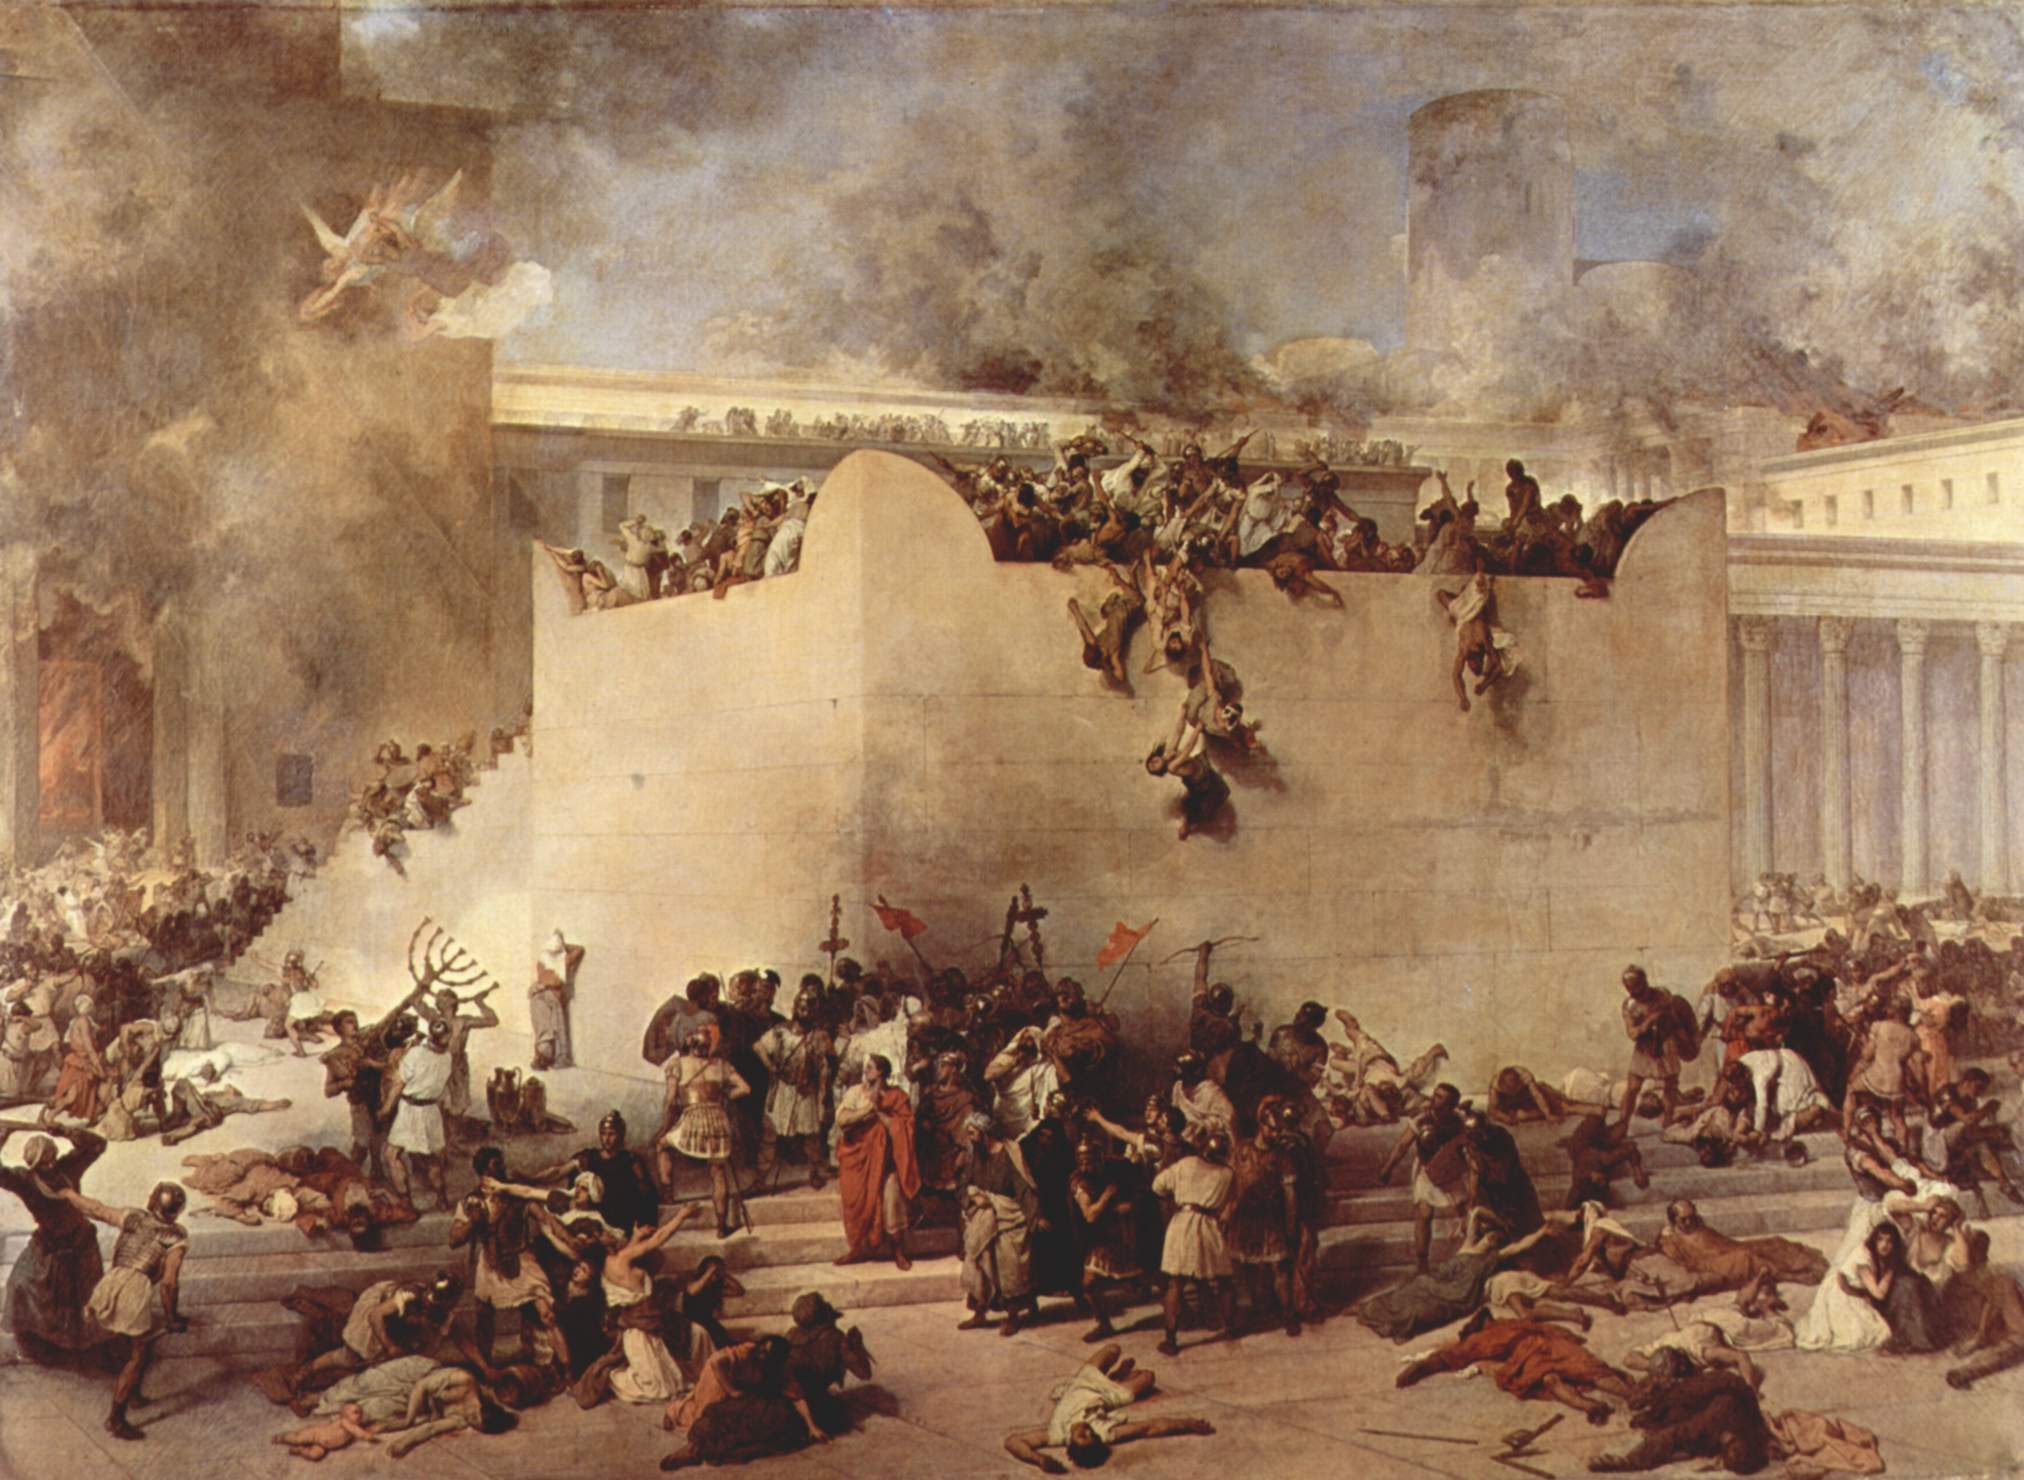 SCISSION: APOCALYPSE: THE GREAT JEWISH REVOLT AGAINST ROME